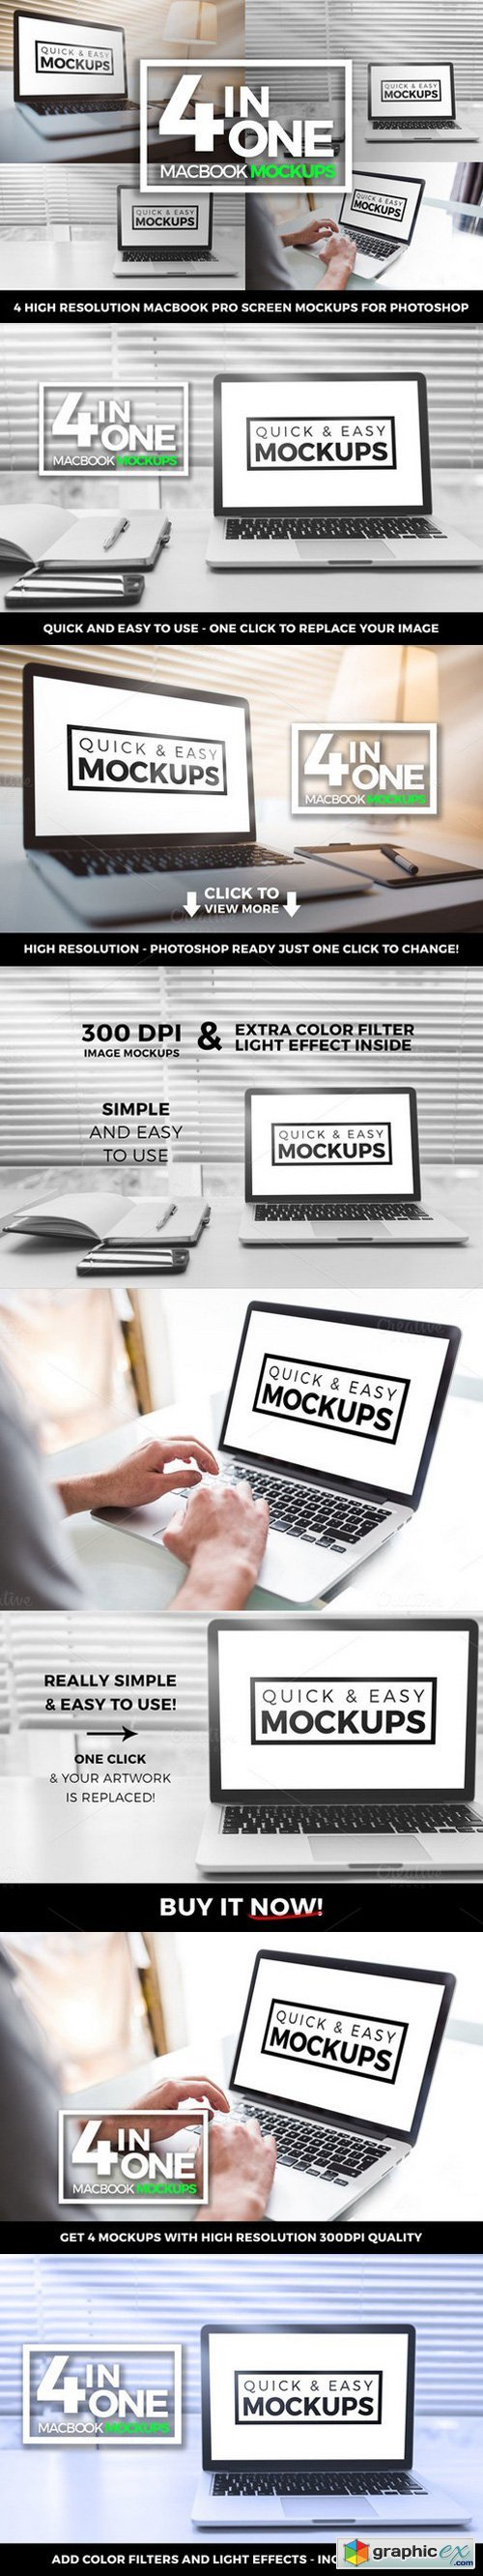 Macbook Pro Mockup Office 4 in one